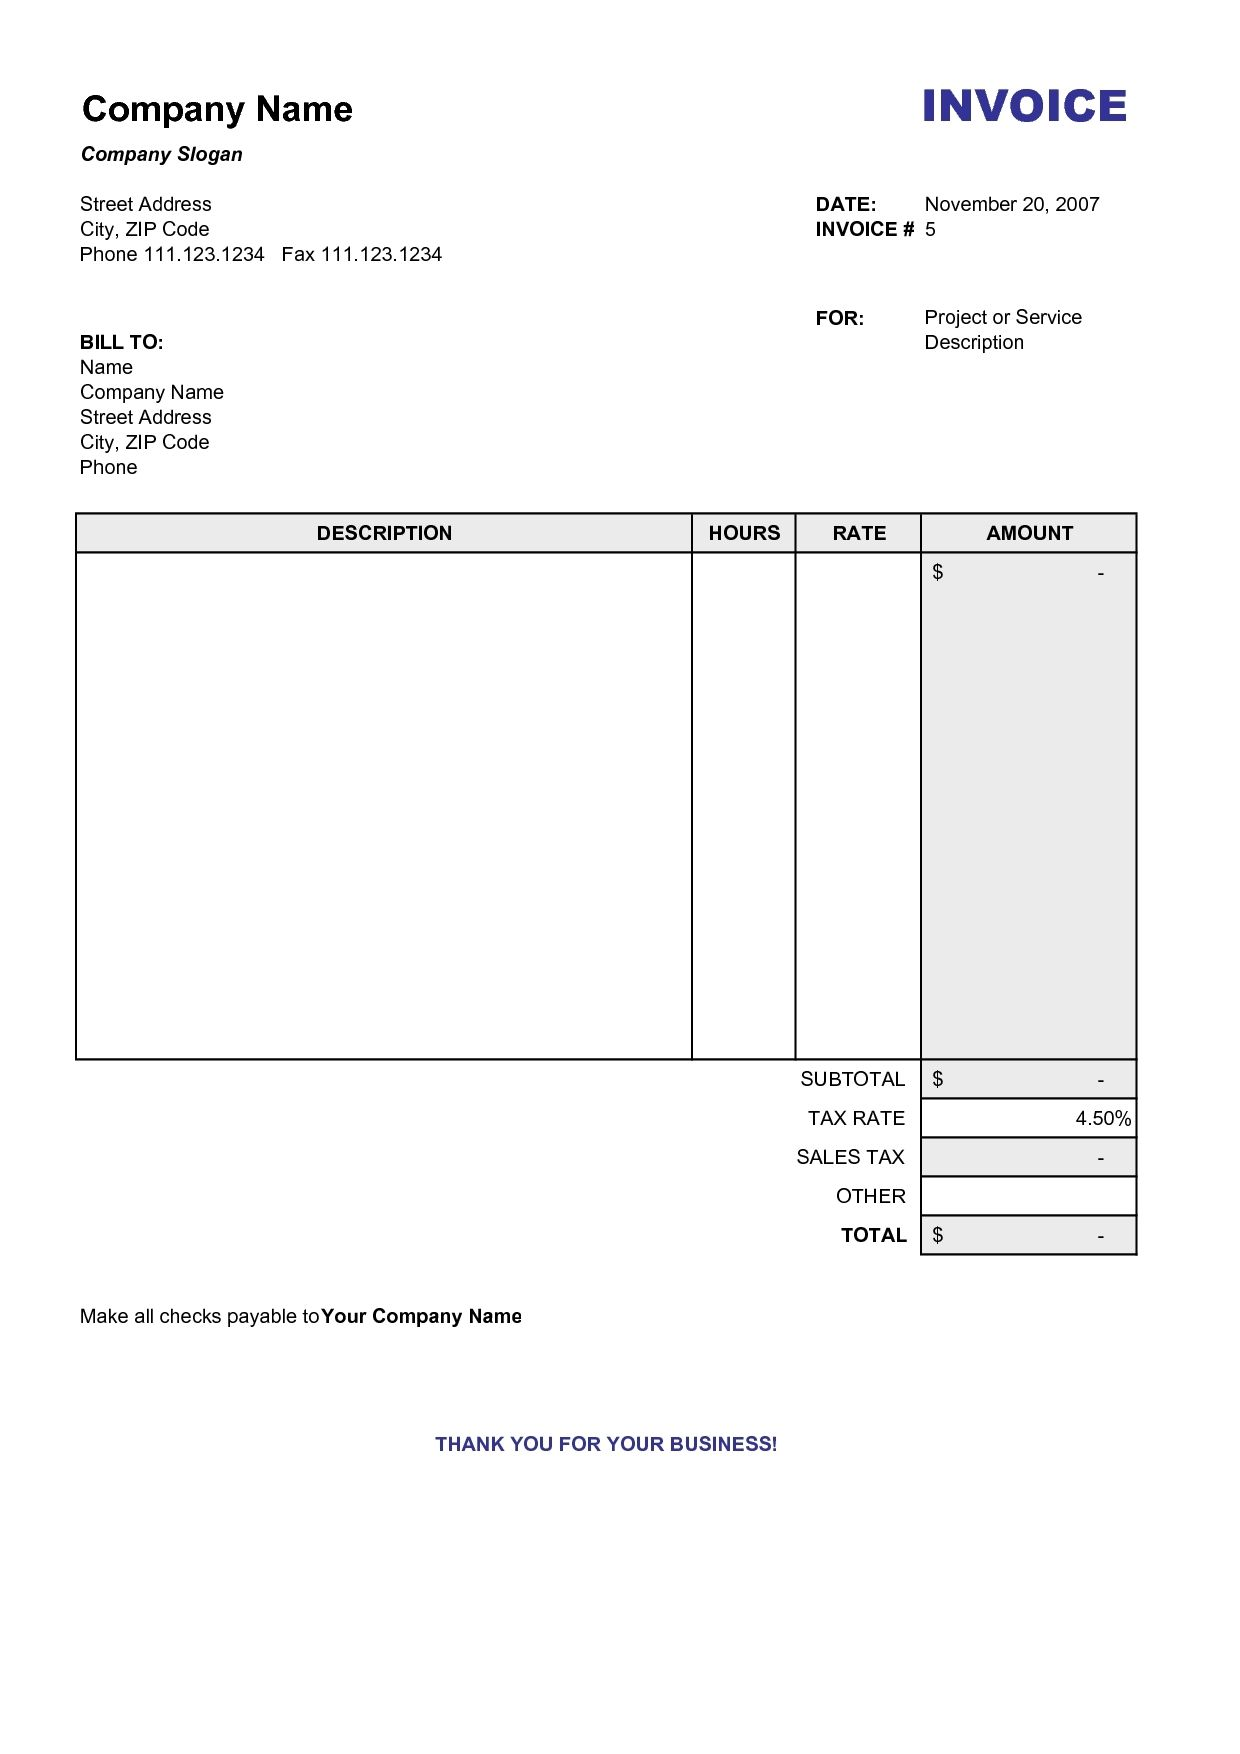 Copy Of A Blank Invoice Invoice Template Free Copy Of Blank - Invoices in word for service business